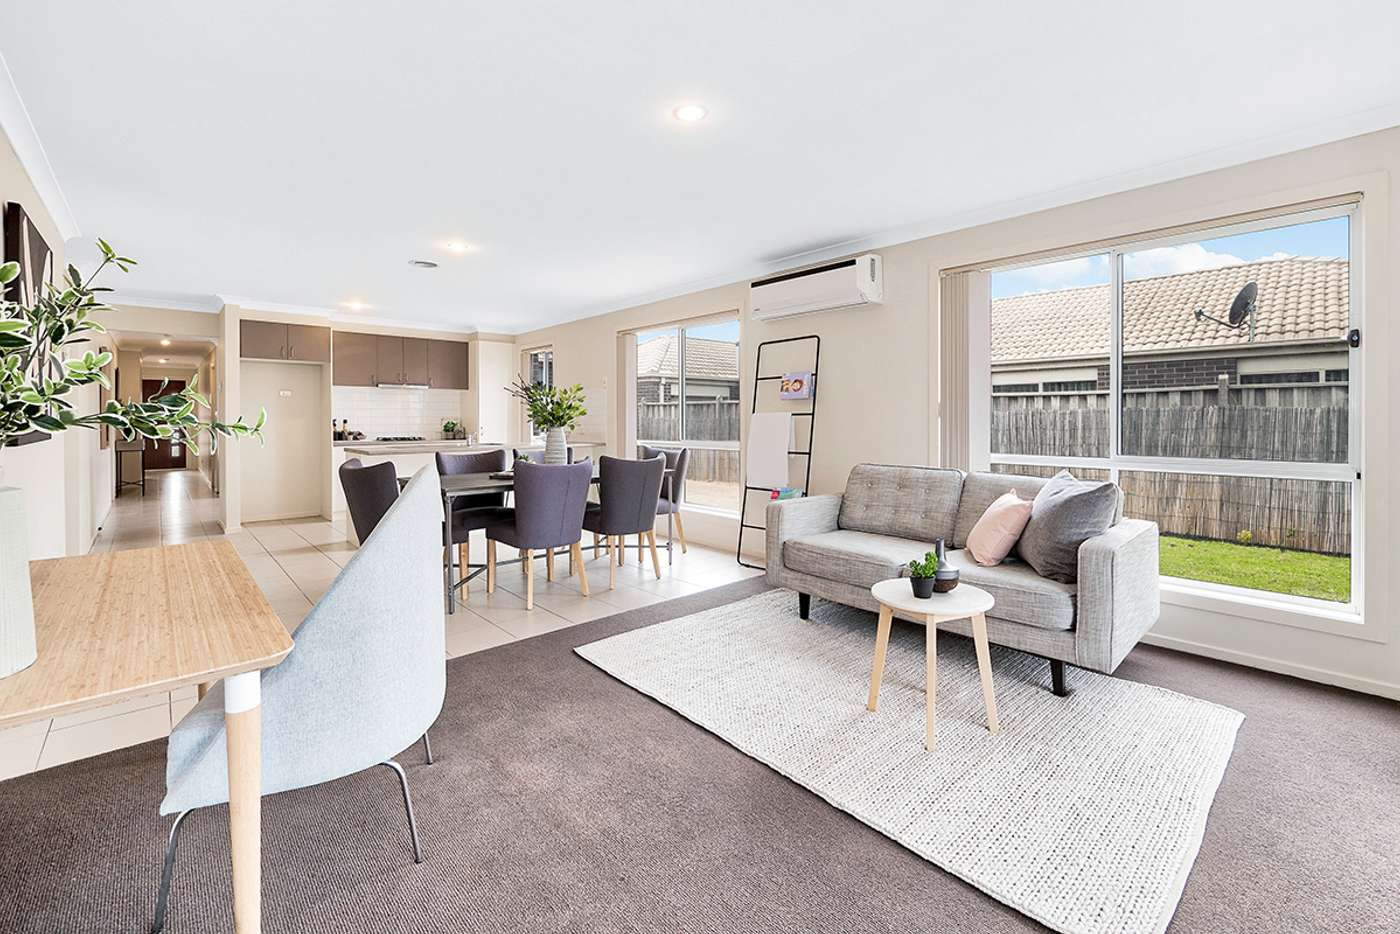 Sixth view of Homely house listing, 17 Tetrabine Way, Lyndhurst VIC 3975